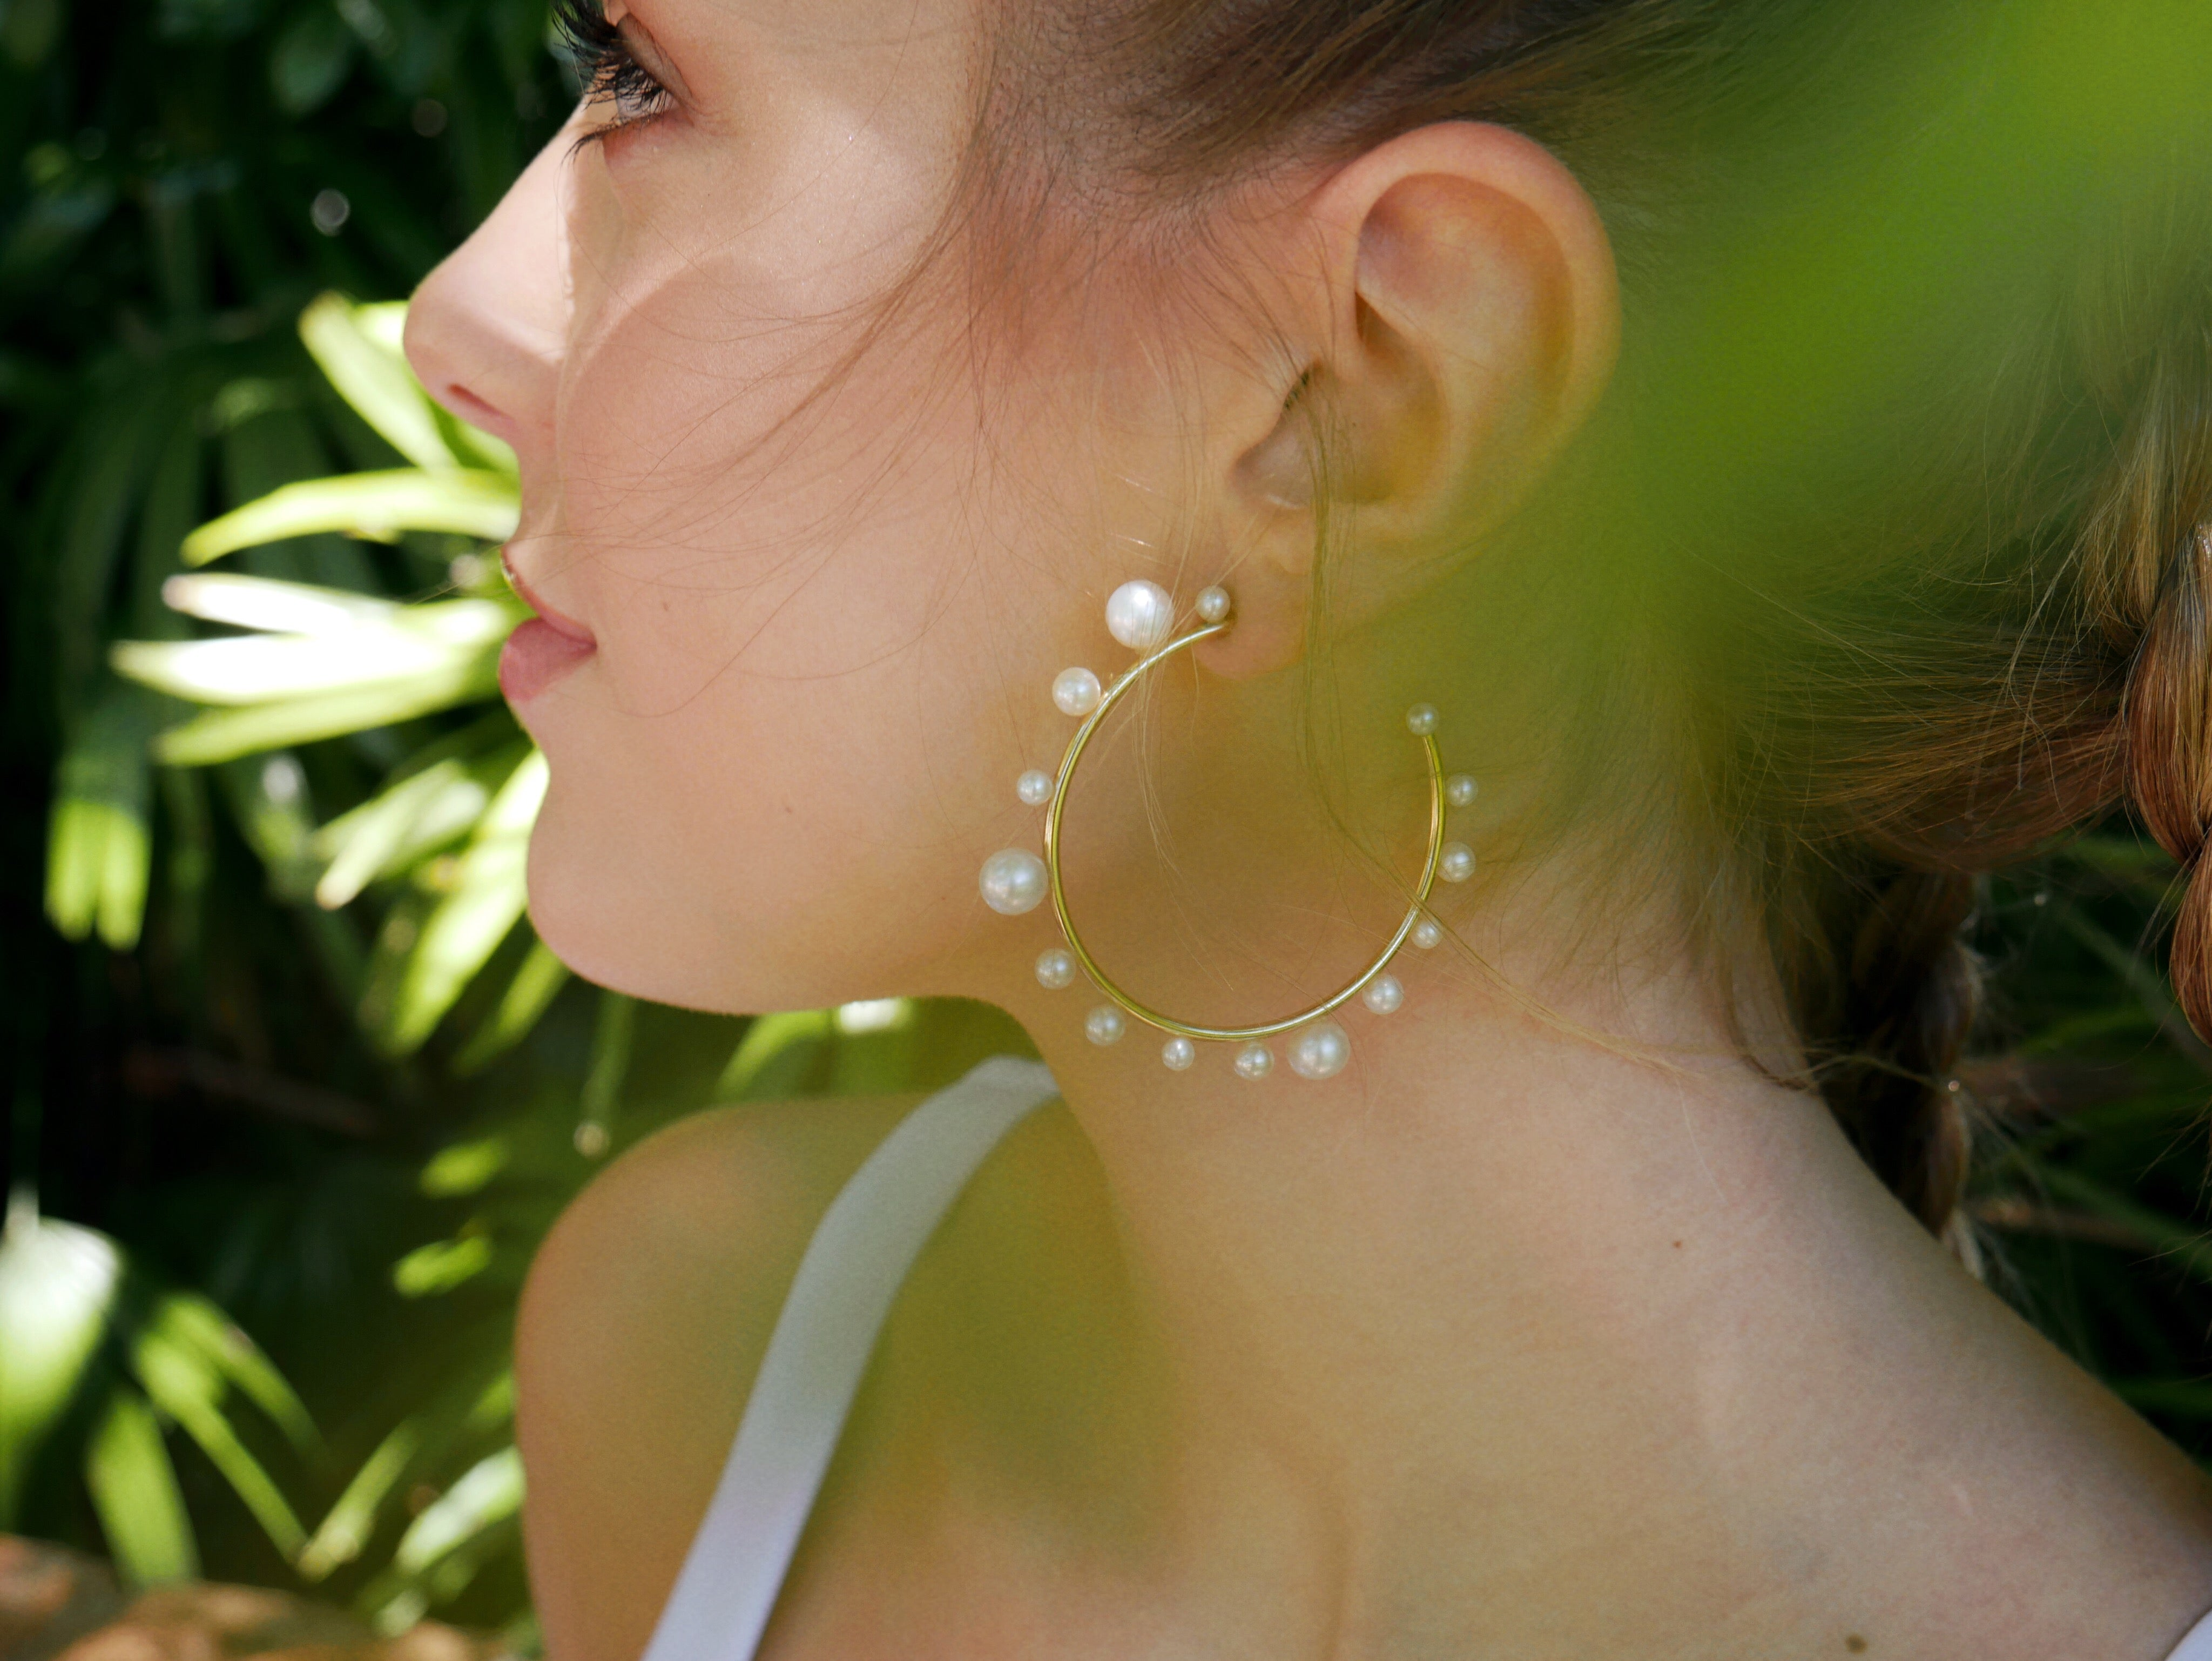 Tahiti Modern Pearl Hoop Earrings - The Beach Bride by Chic Parisien, a destination for beach weddings, bachelorettes and honeymoons